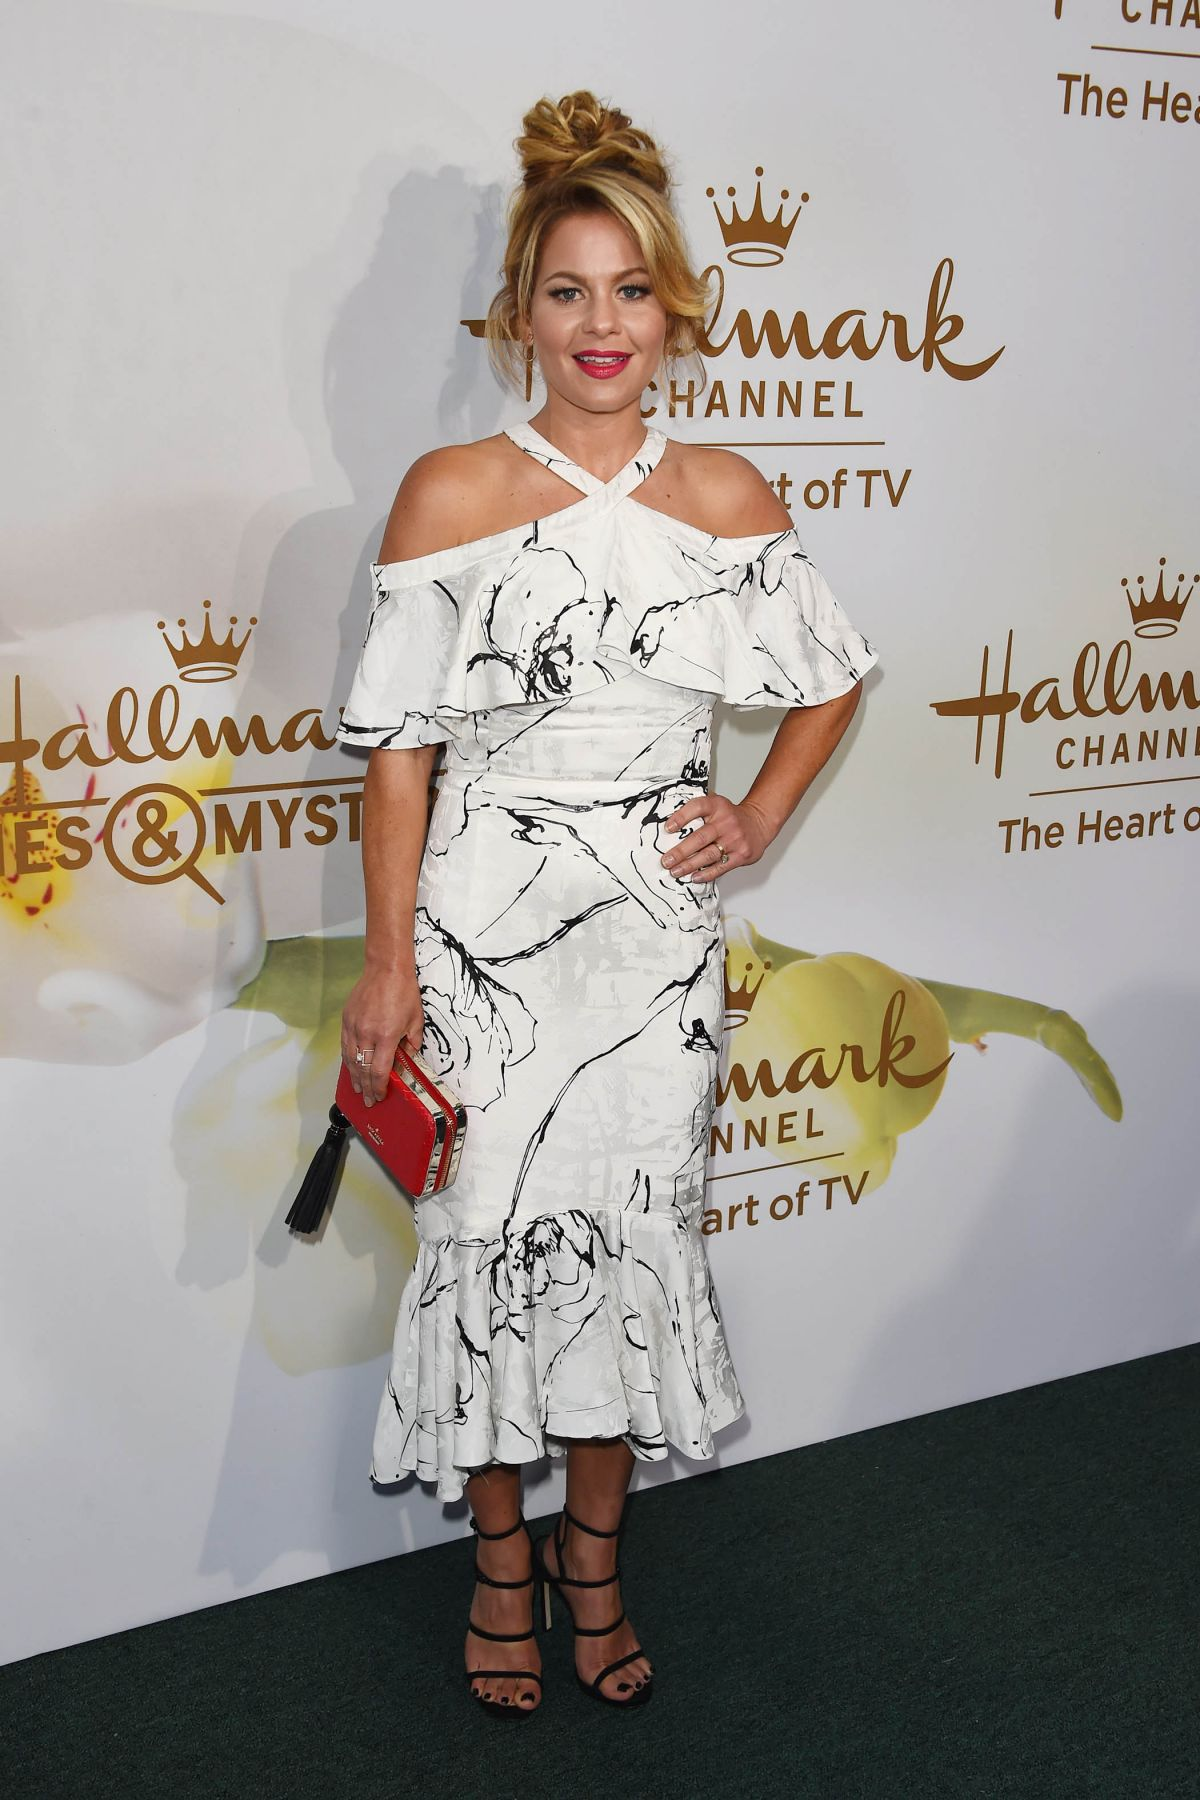 CANDACE CAMERON BURE at Hallmark Event at TCA Summer Tour in Los Angesel 07/27/2017